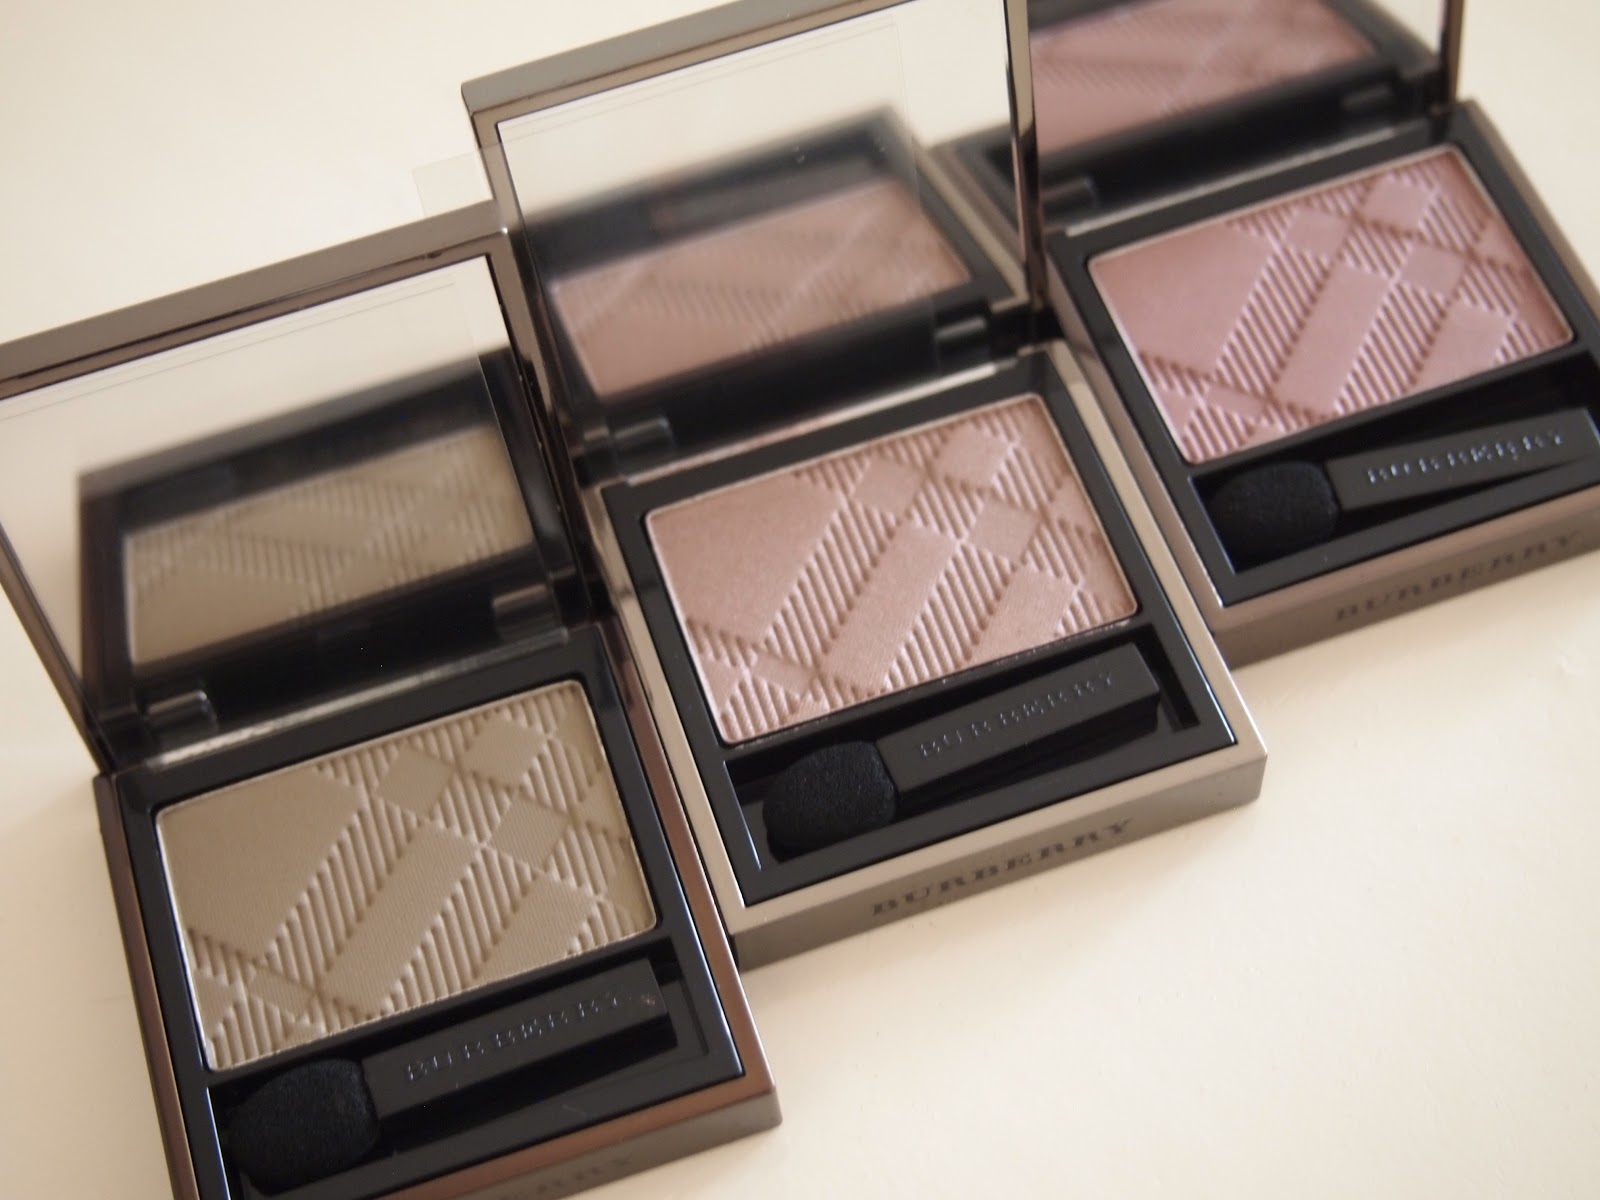 Burberry Sheer Eyeshadow In Khaki Rosewood And Antique Rose